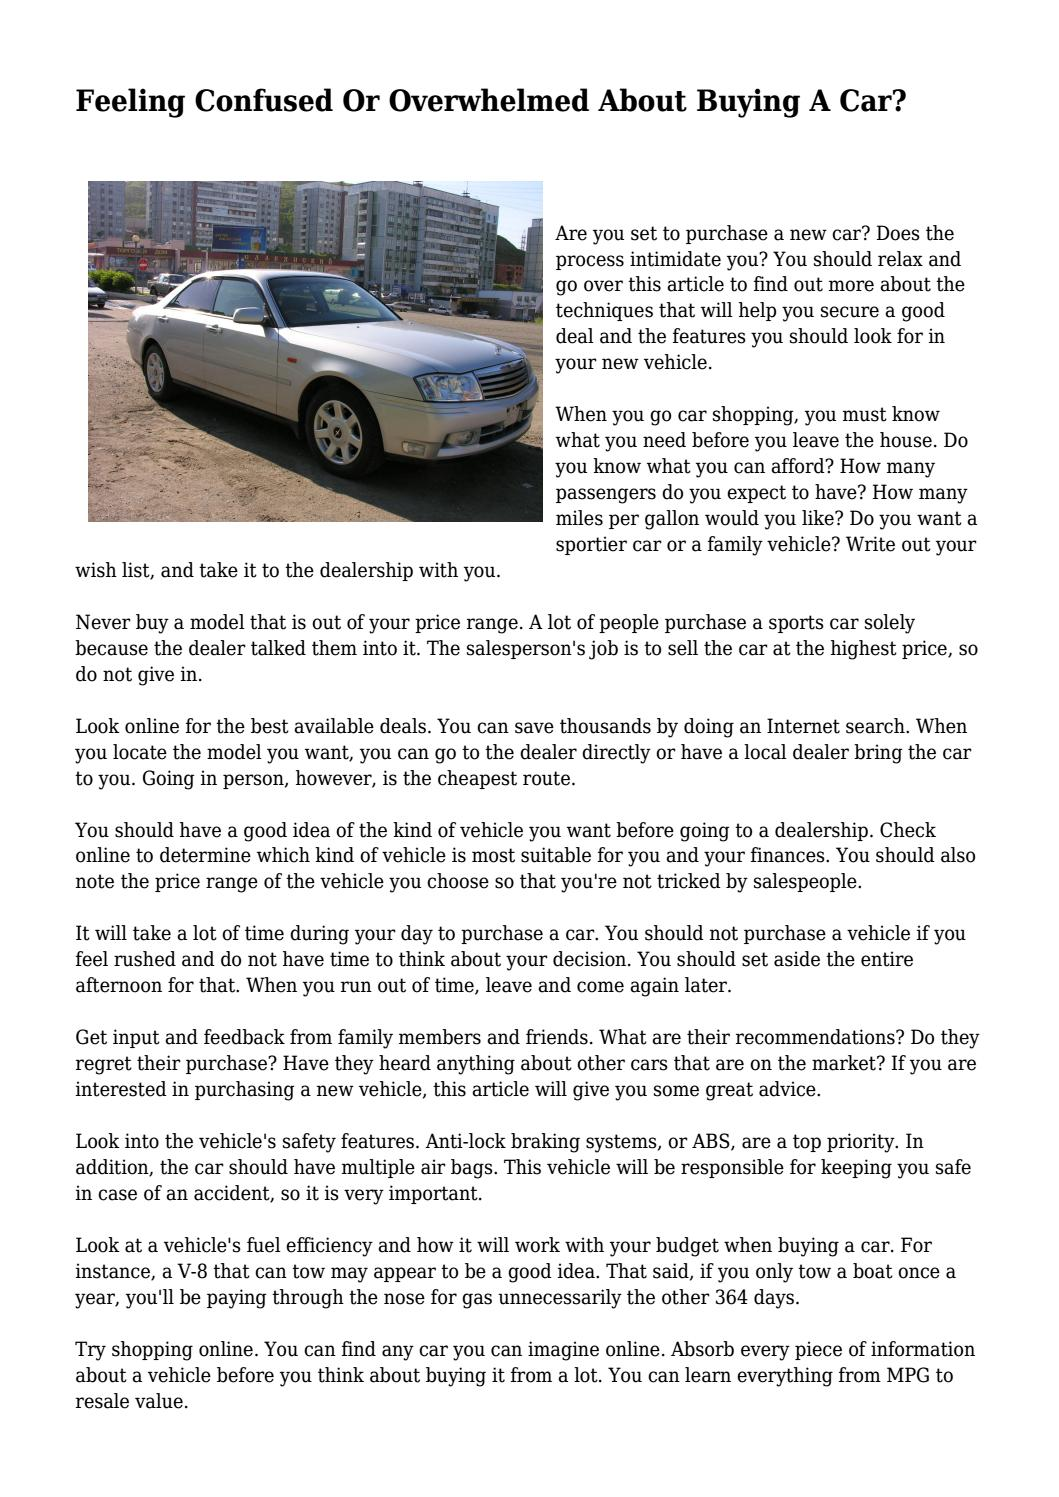 feeling confused or overwhelmed about buying a car? by